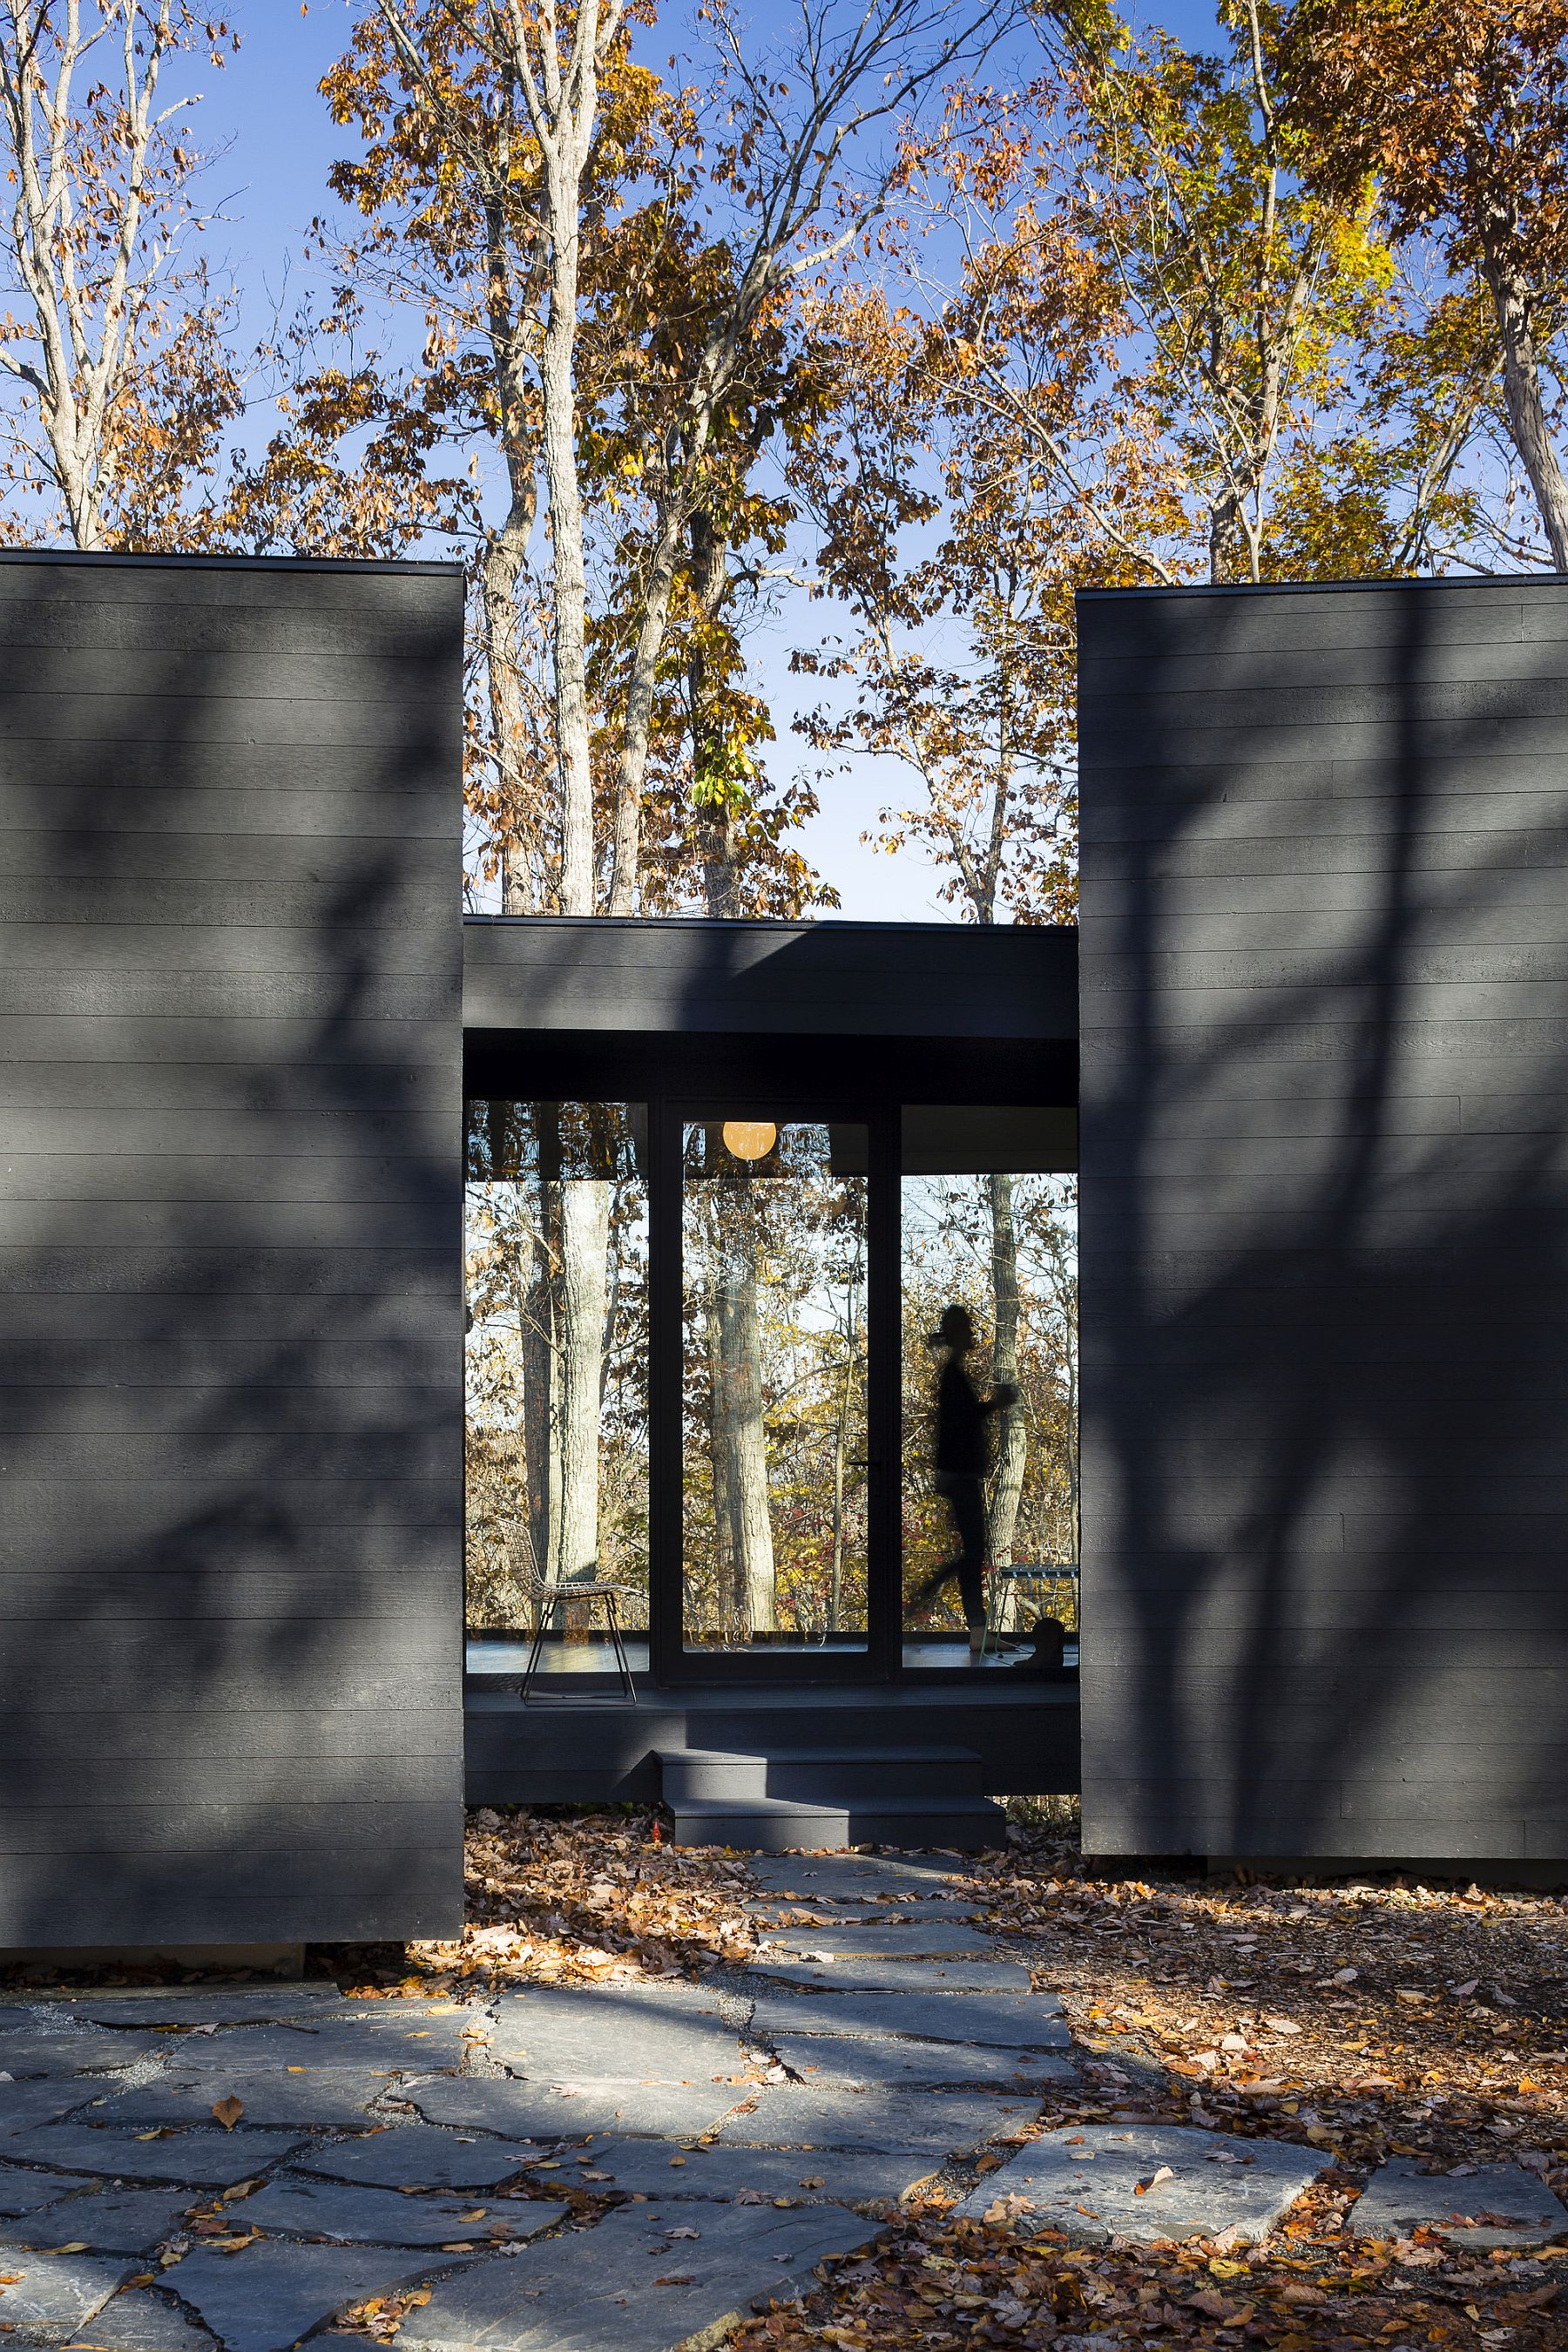 Covered walkways connect the different individual structures